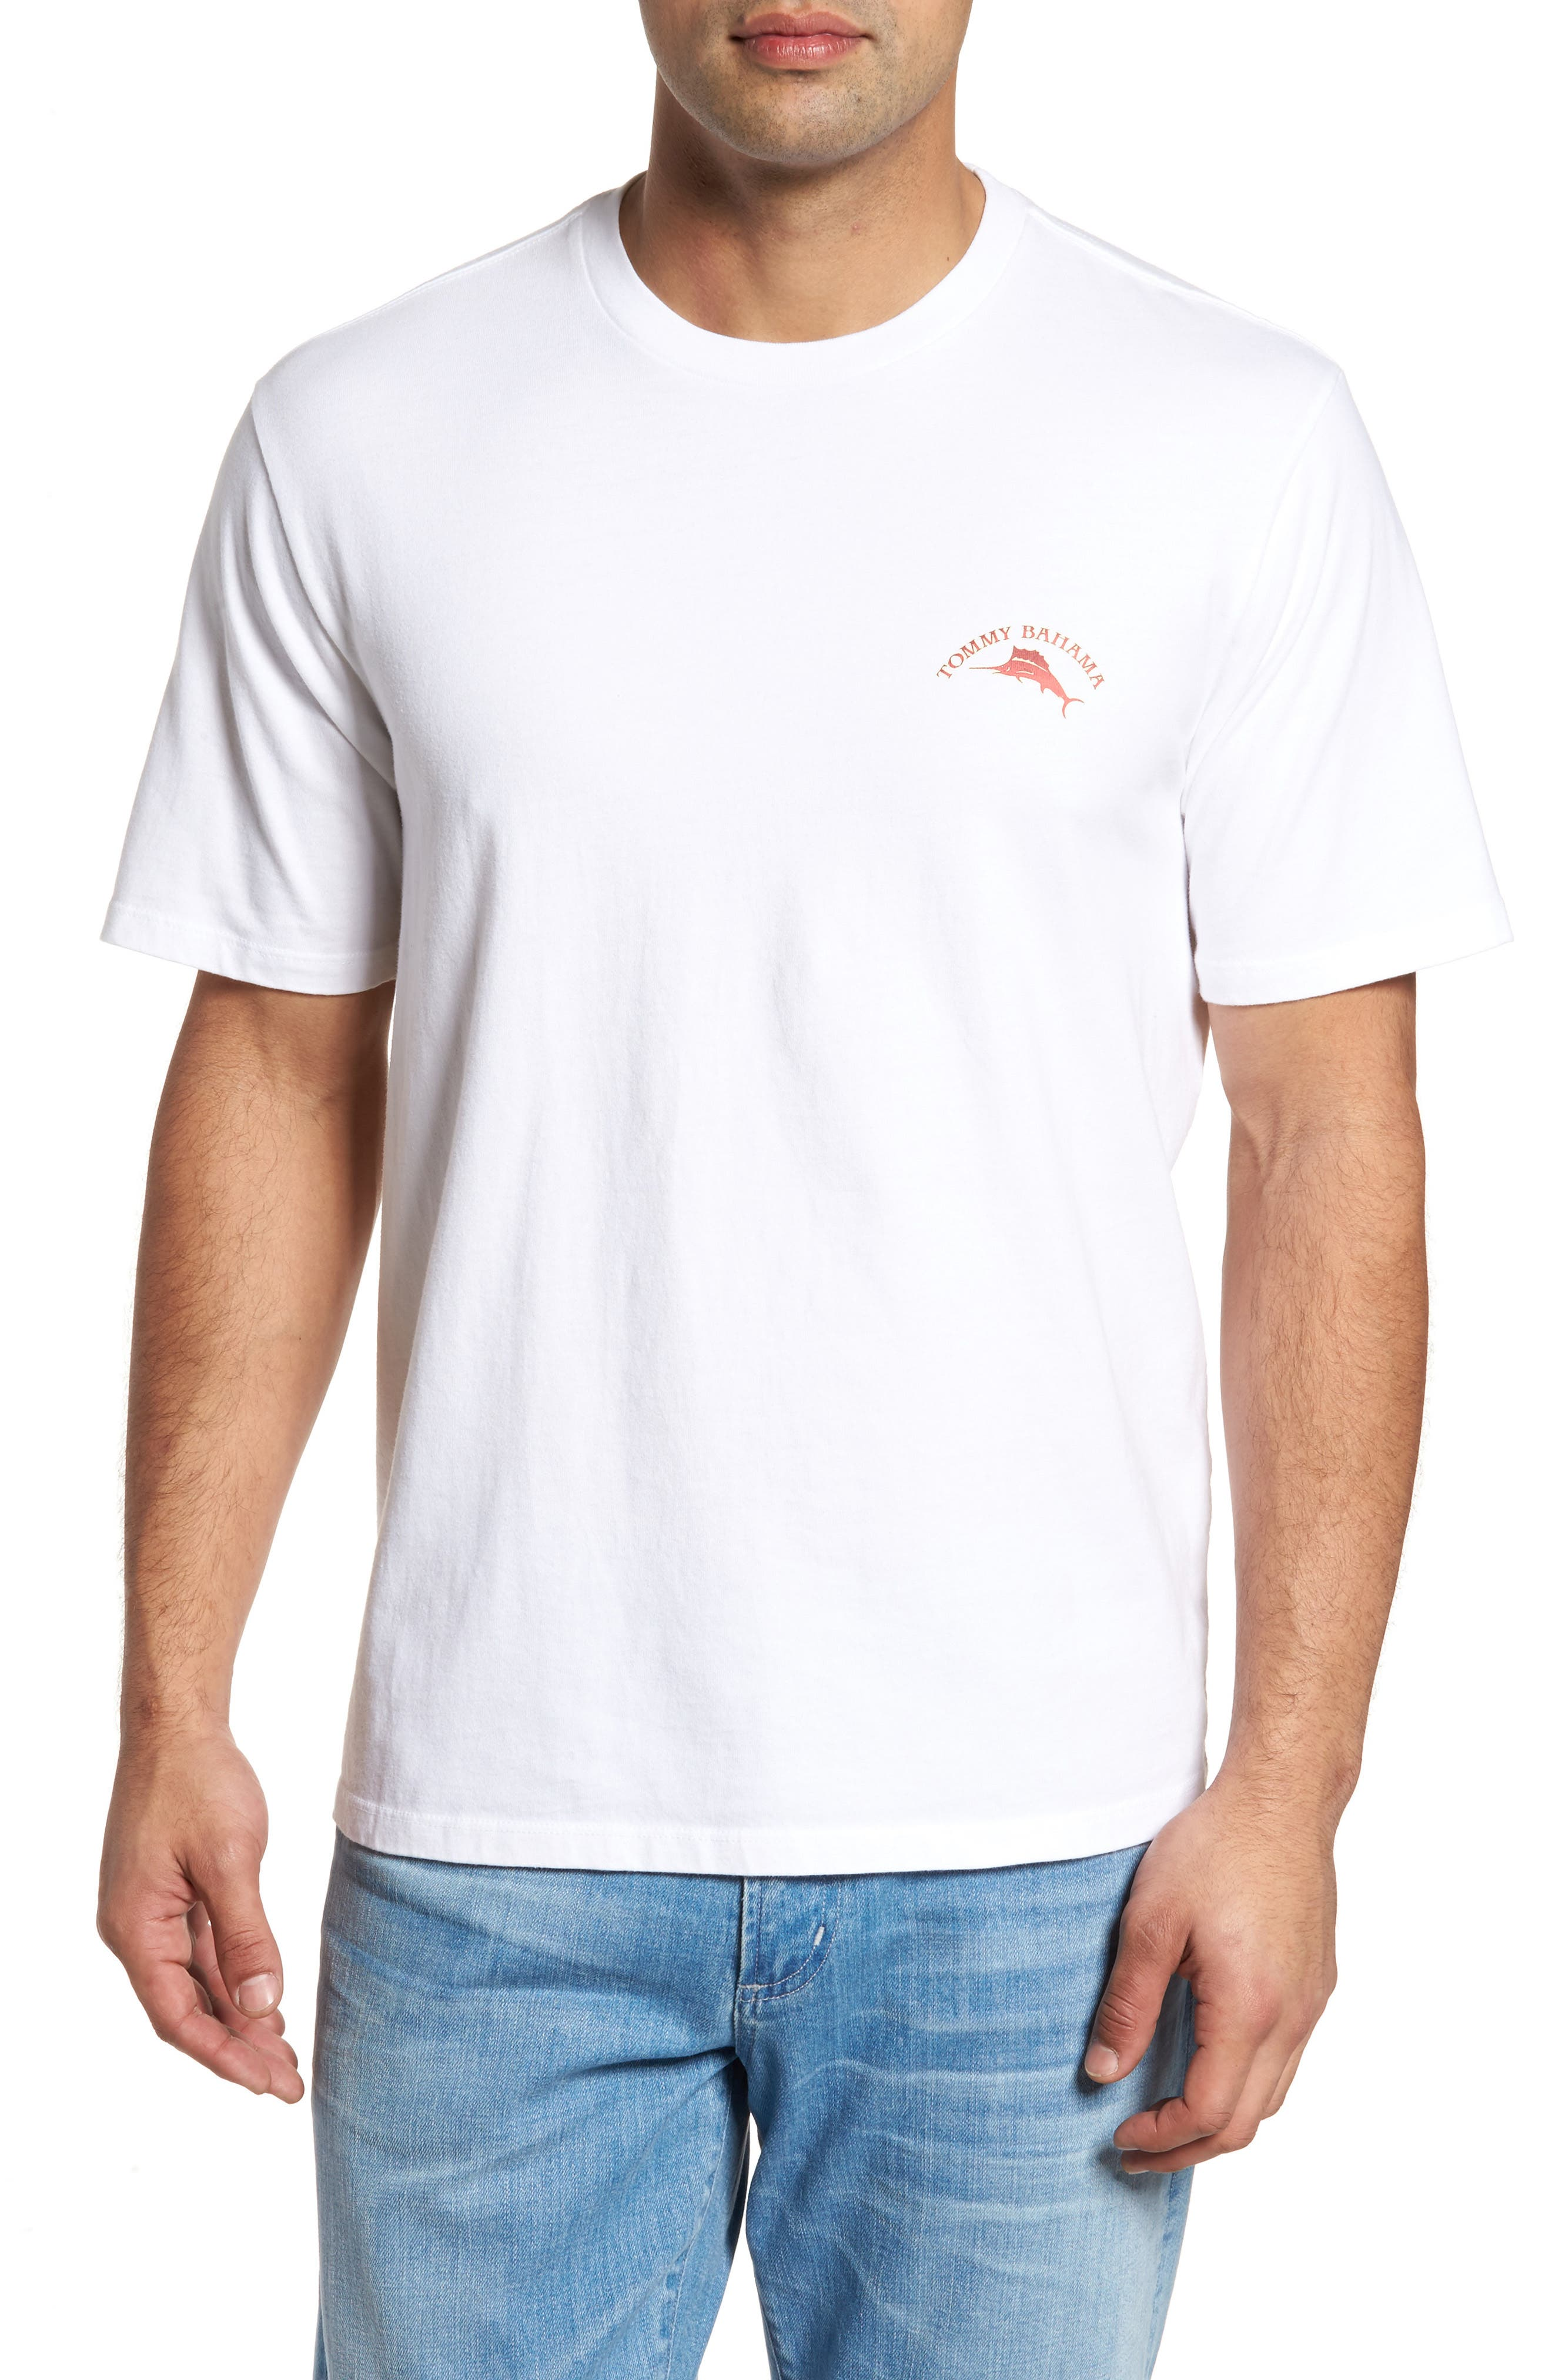 Tommy Bahama Zinspiration Graphic T-Shirt